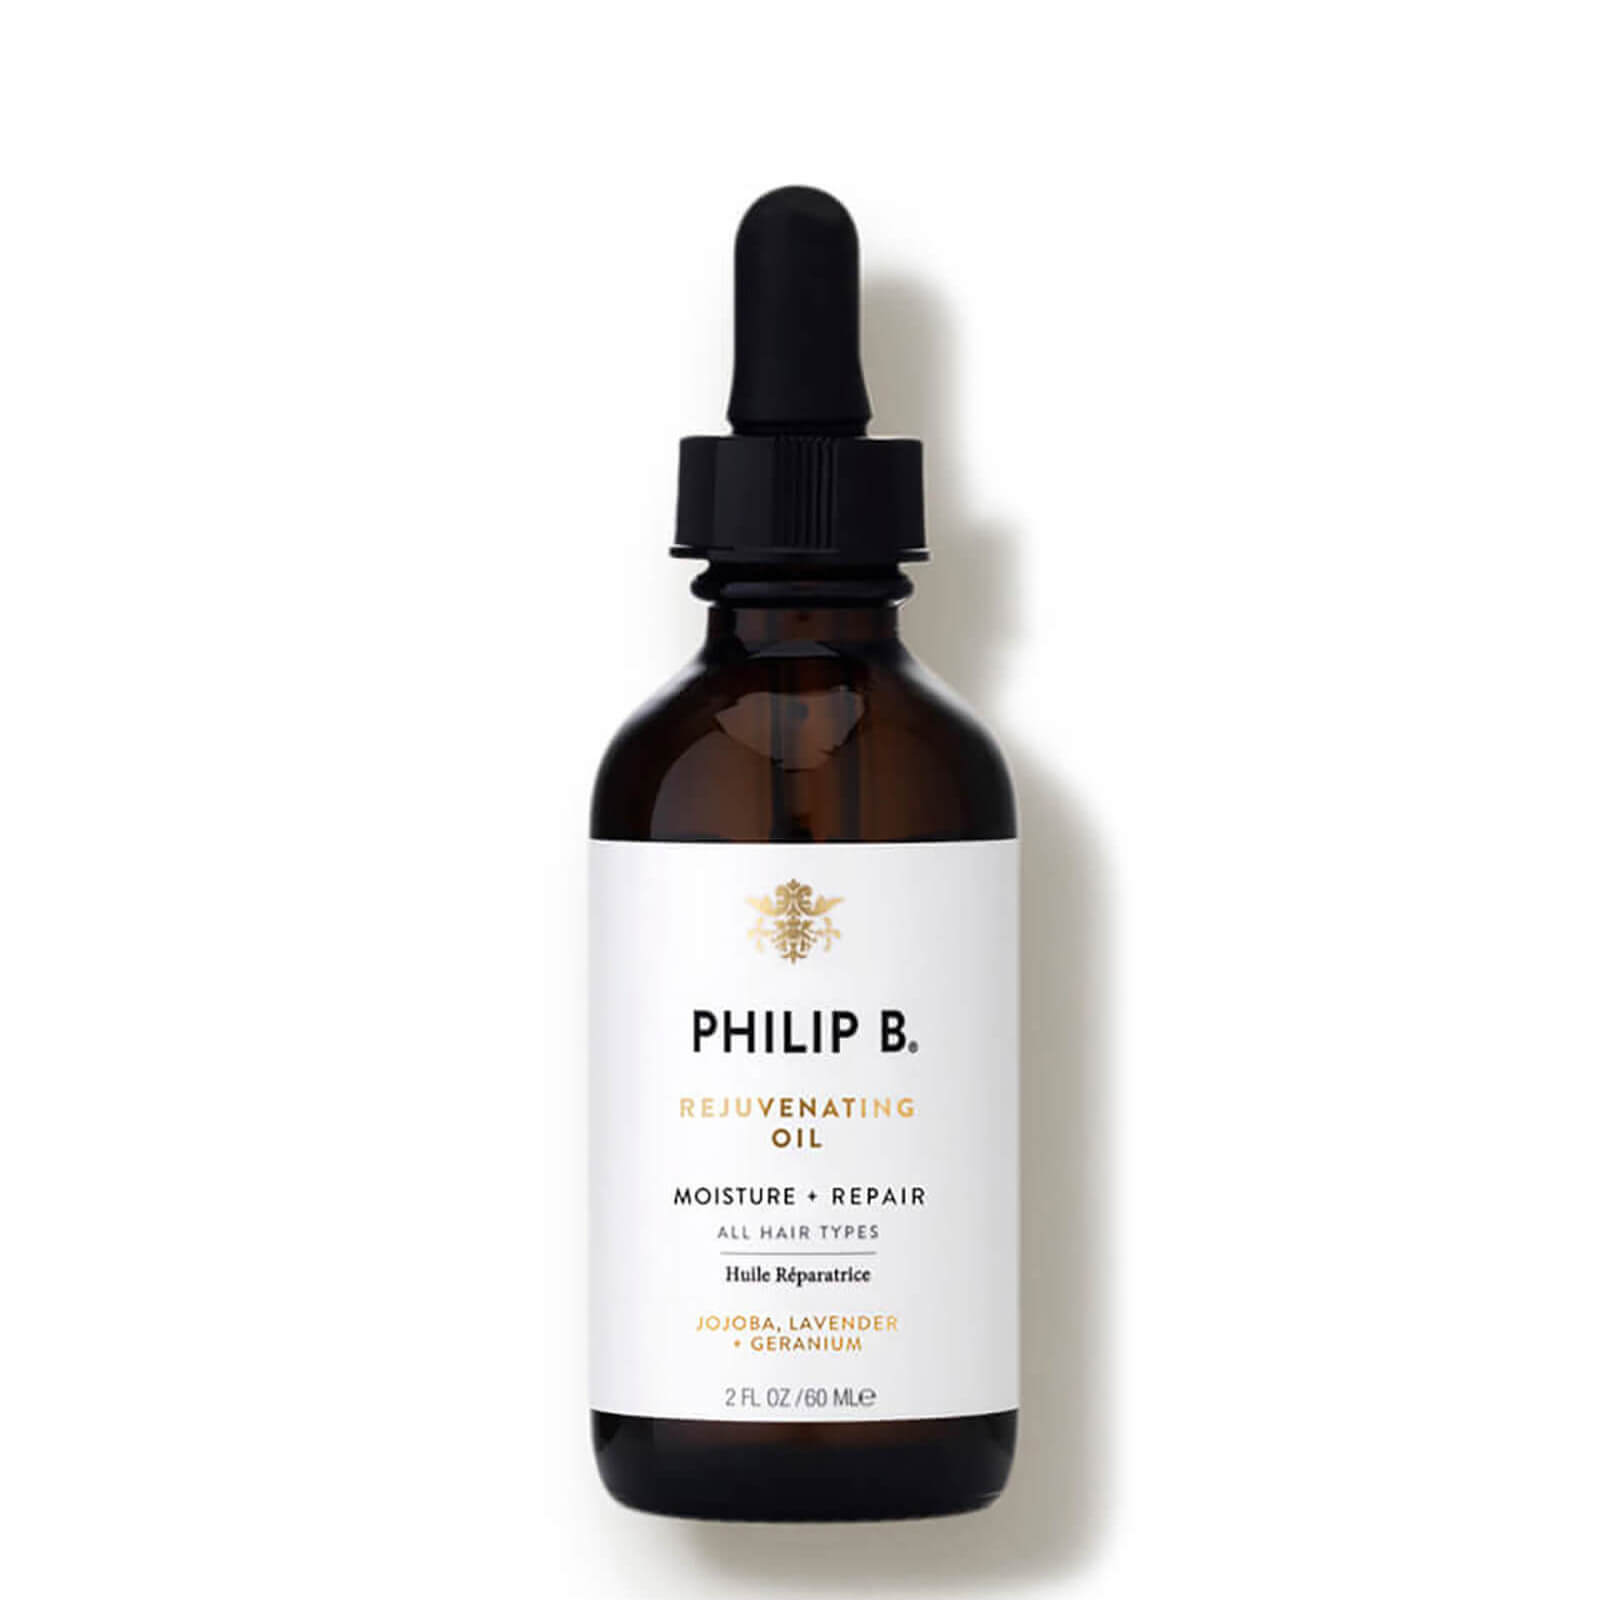 Watch a story about PHILIP B REJUVENATING OIL